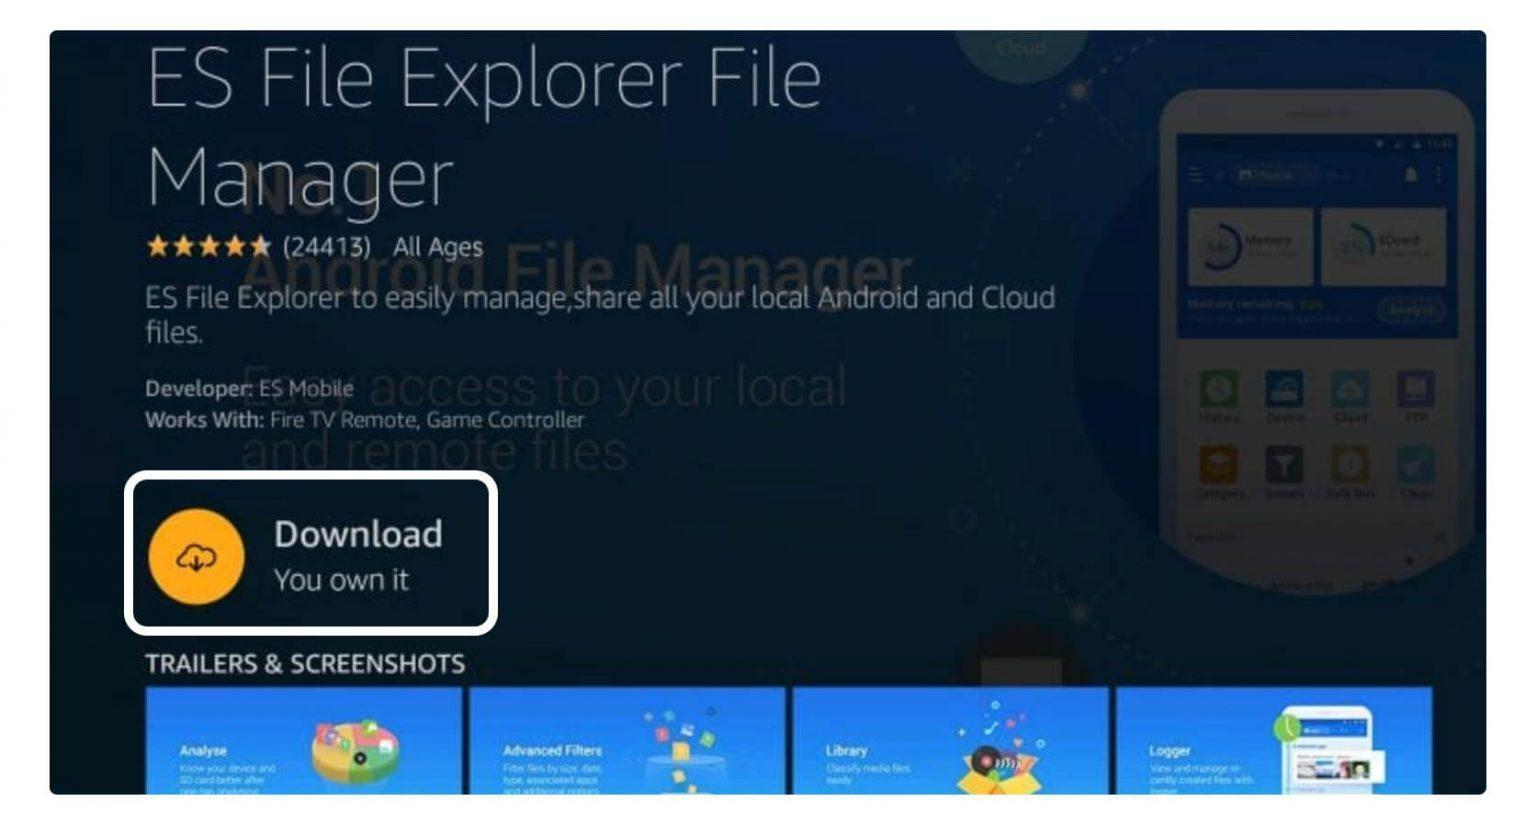 ES File Explorer will be open. Search the downloader icon